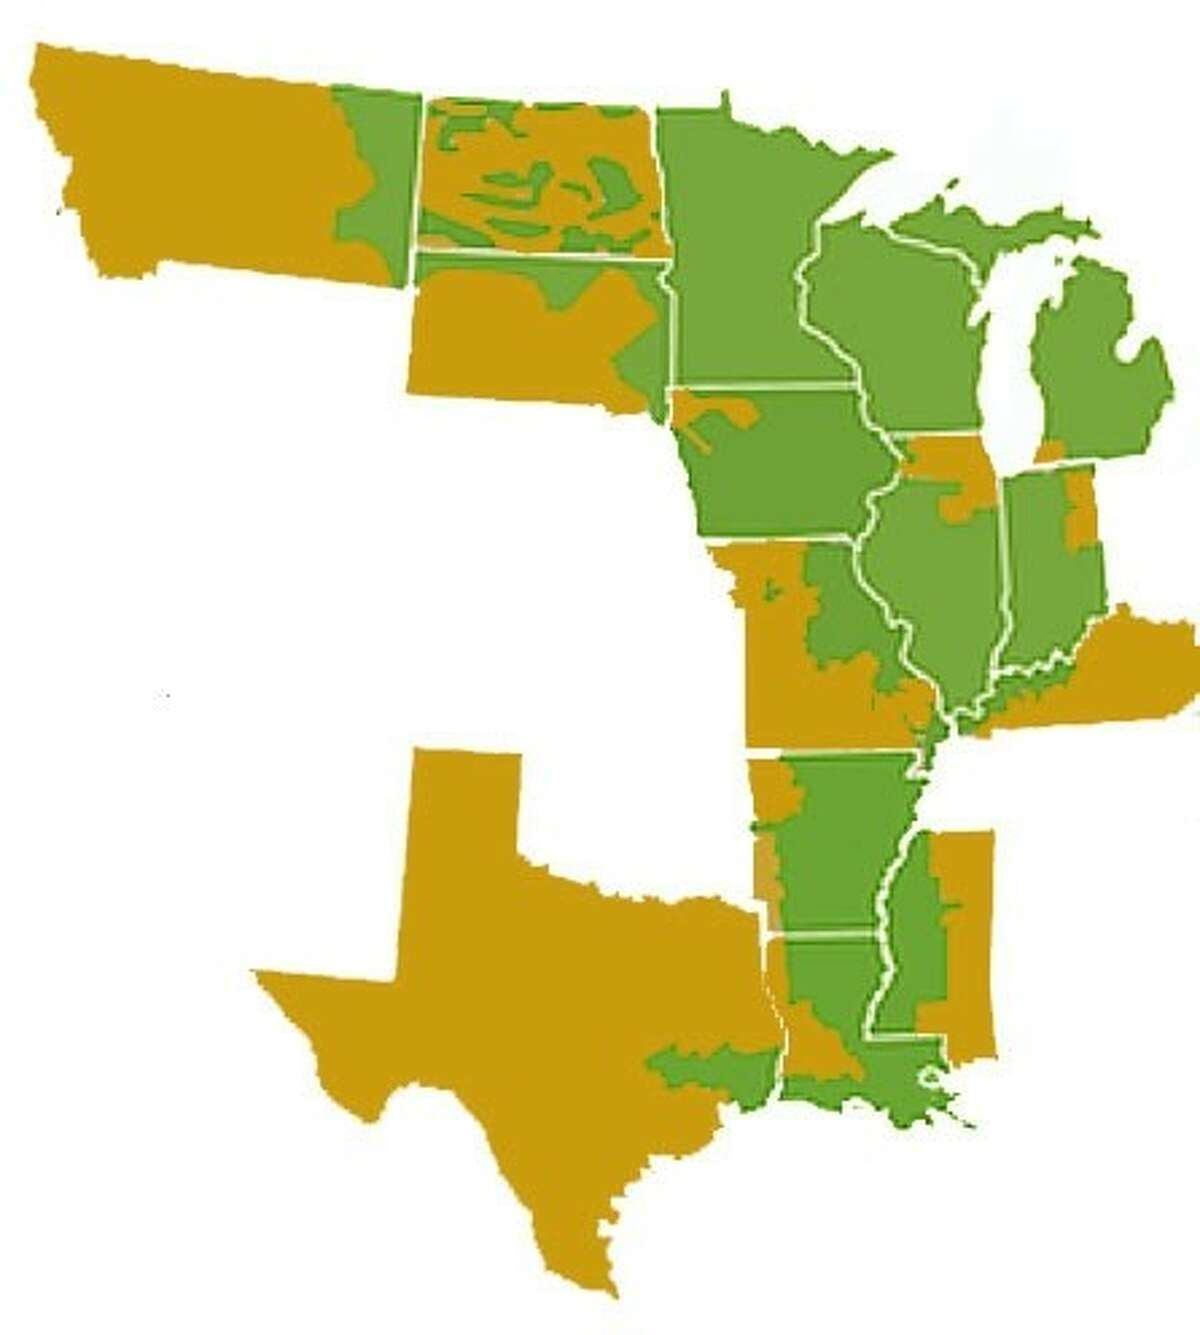 MISO operates with power producers and transmitters in 15 states, plus one Canadian province.